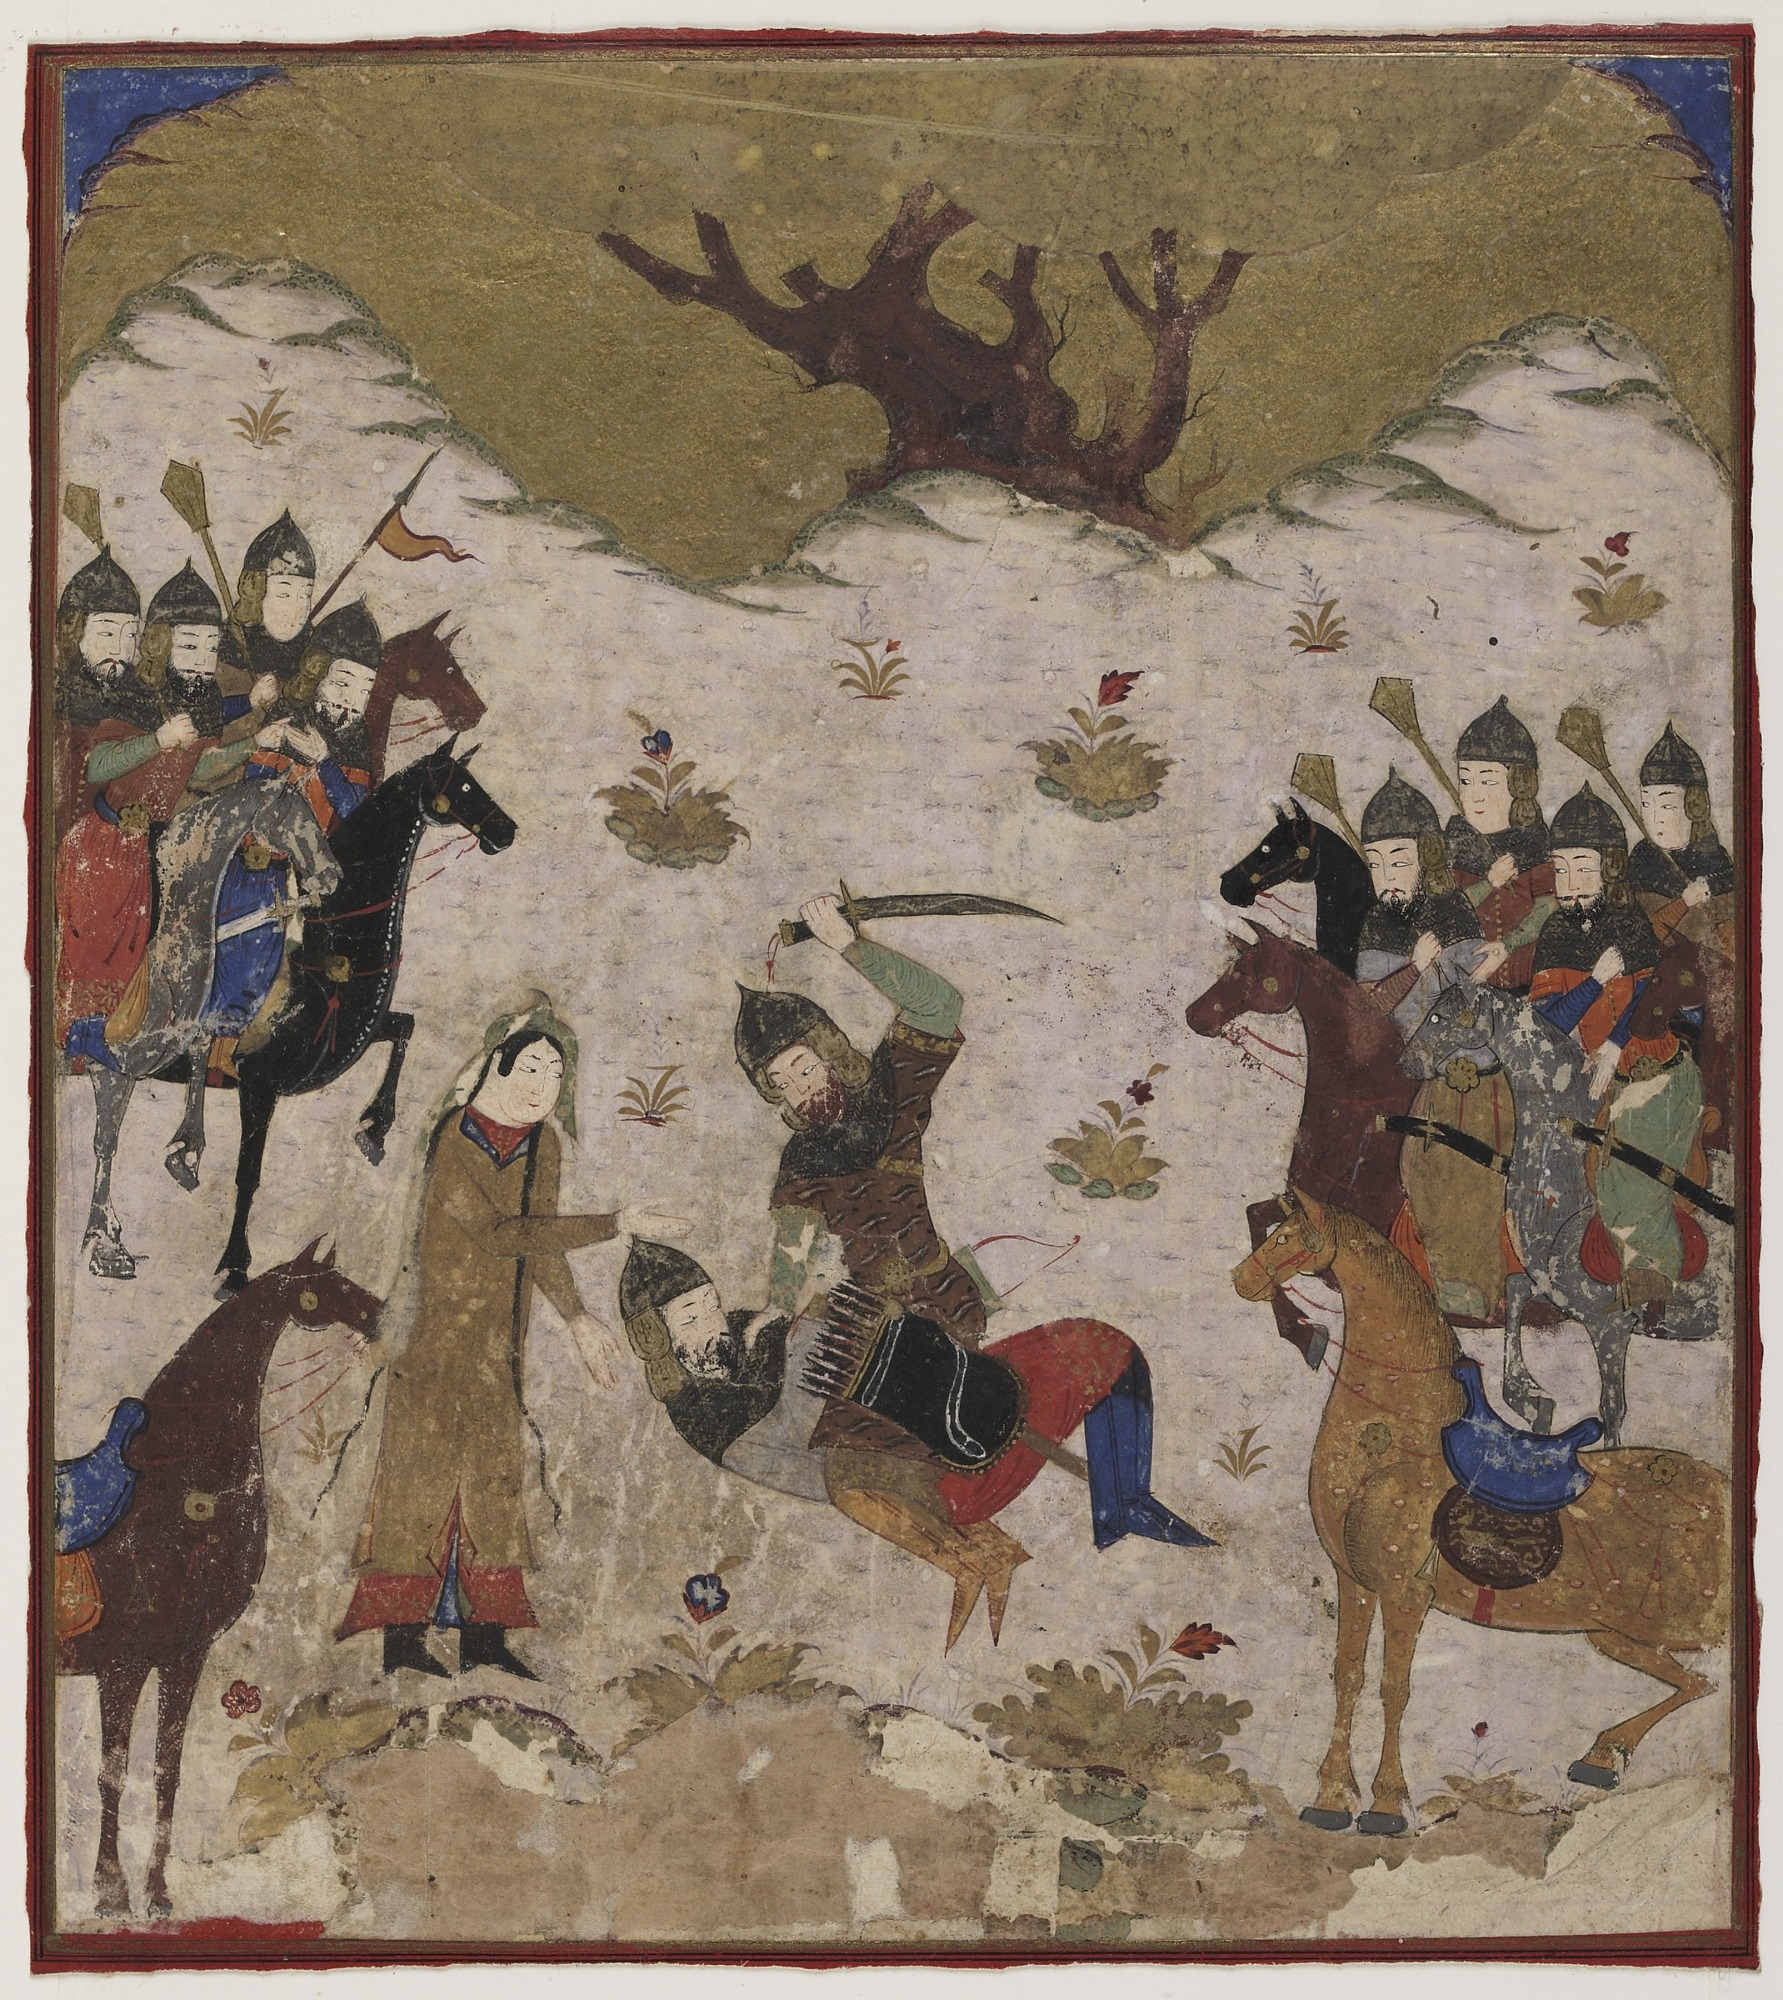 Folio from a Shahnama (Book of kings) by Firdawsi (d.1020); Shahru identifies Burzu as Rustam